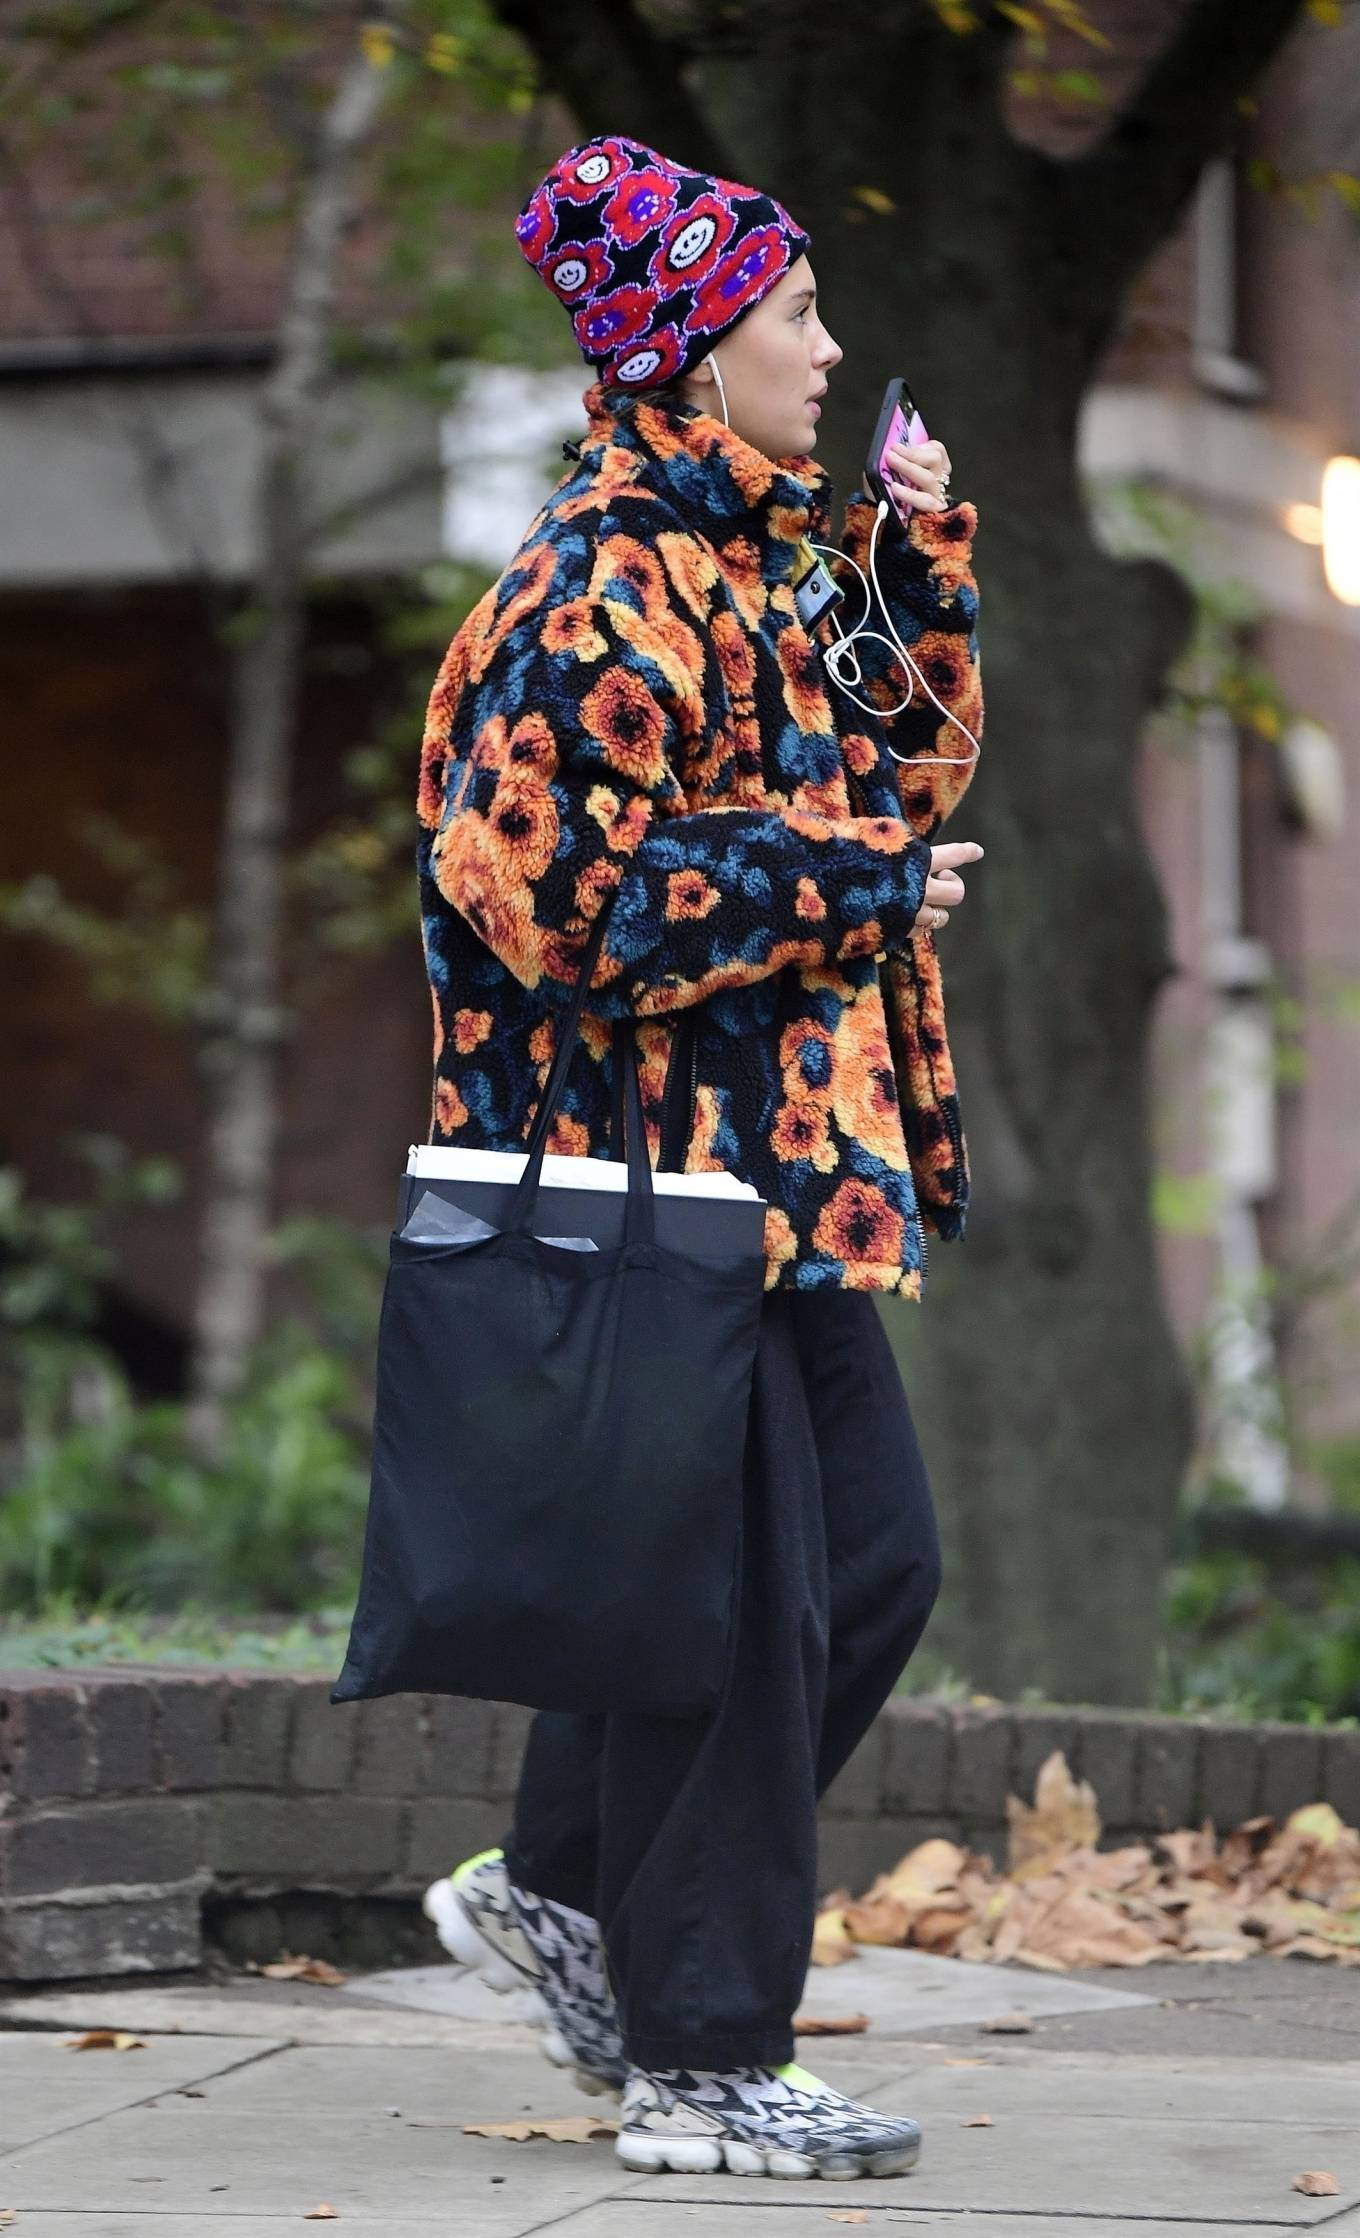 Iris Law - Out and about in North London